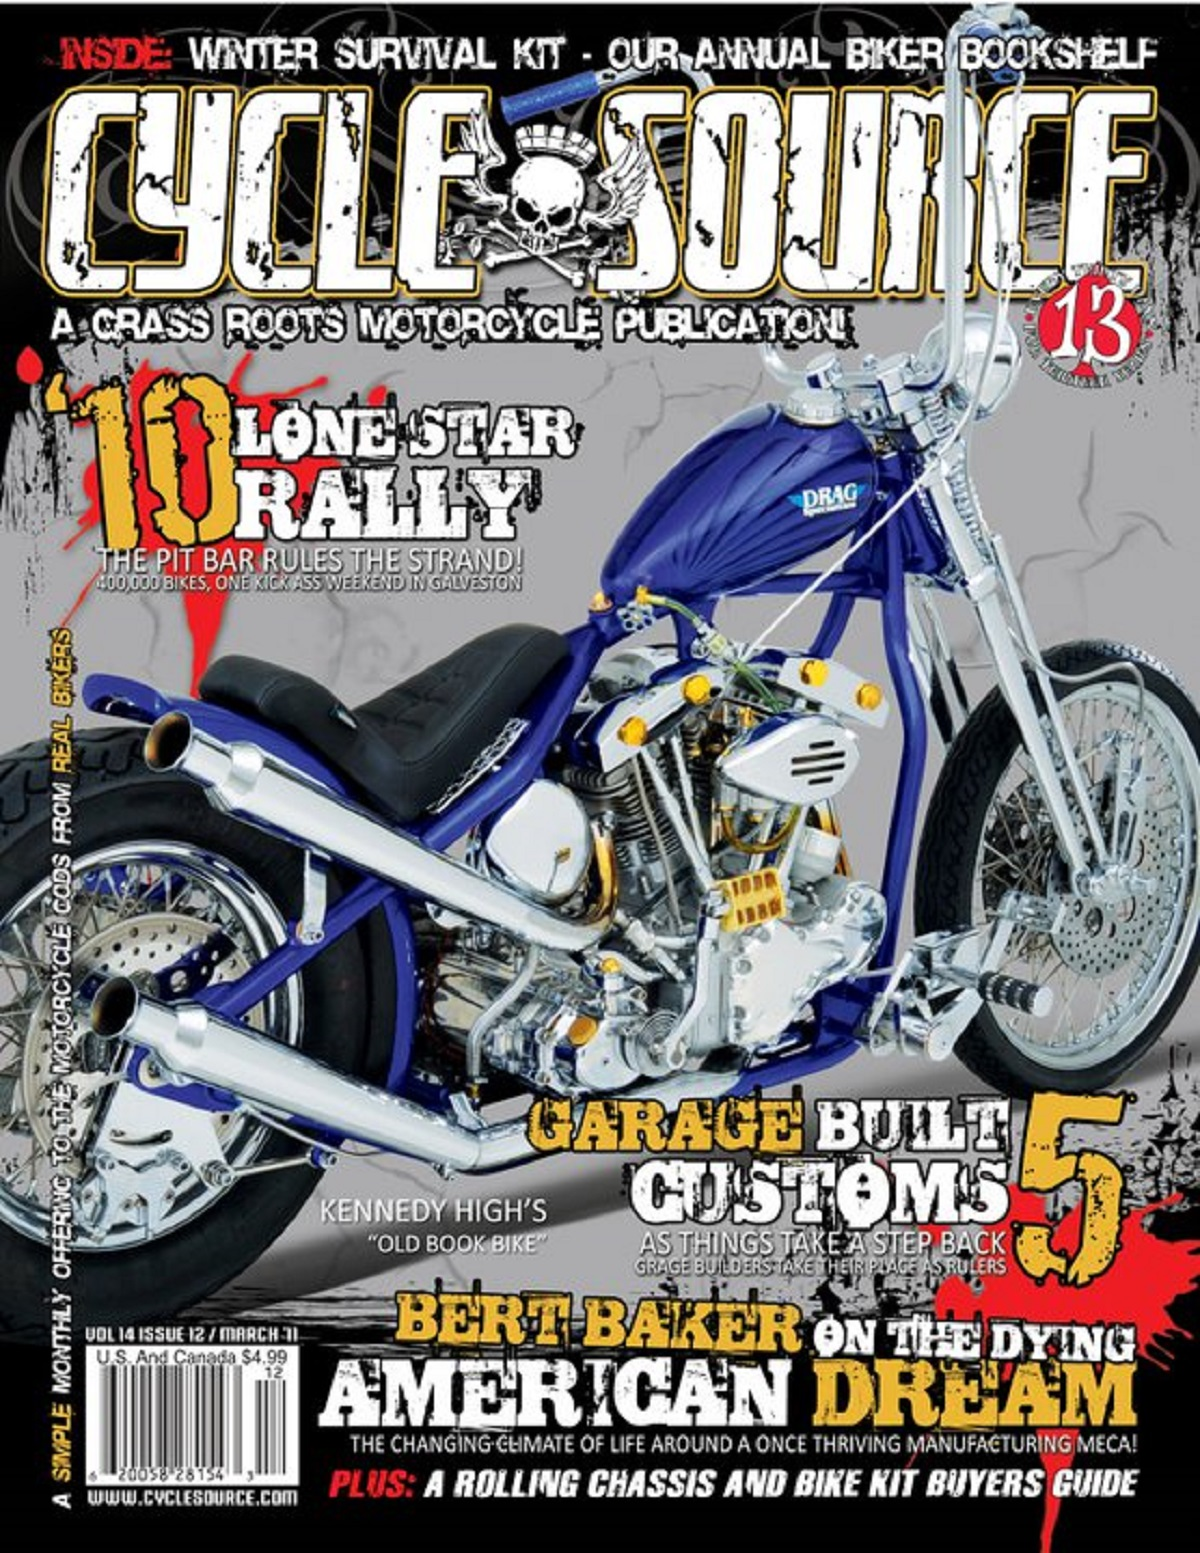 2011 Drag Specialties Old Book Cover Bike